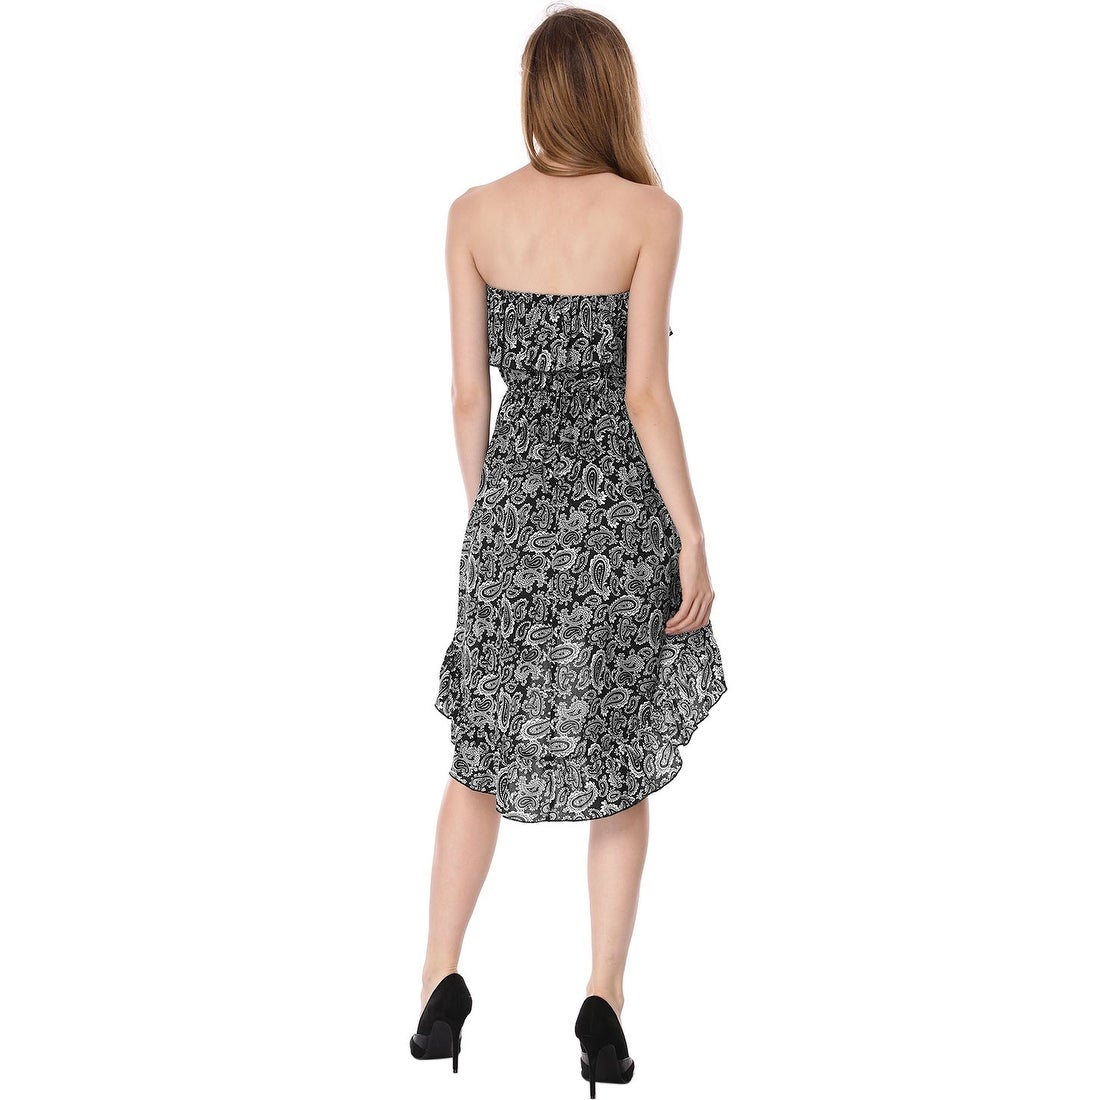 275200d2fa Shop Allegra K Ladies Allover Flower Flounce Strapless Dress Black - Free  Shipping On Orders Over  45 - Overstock - 23579739